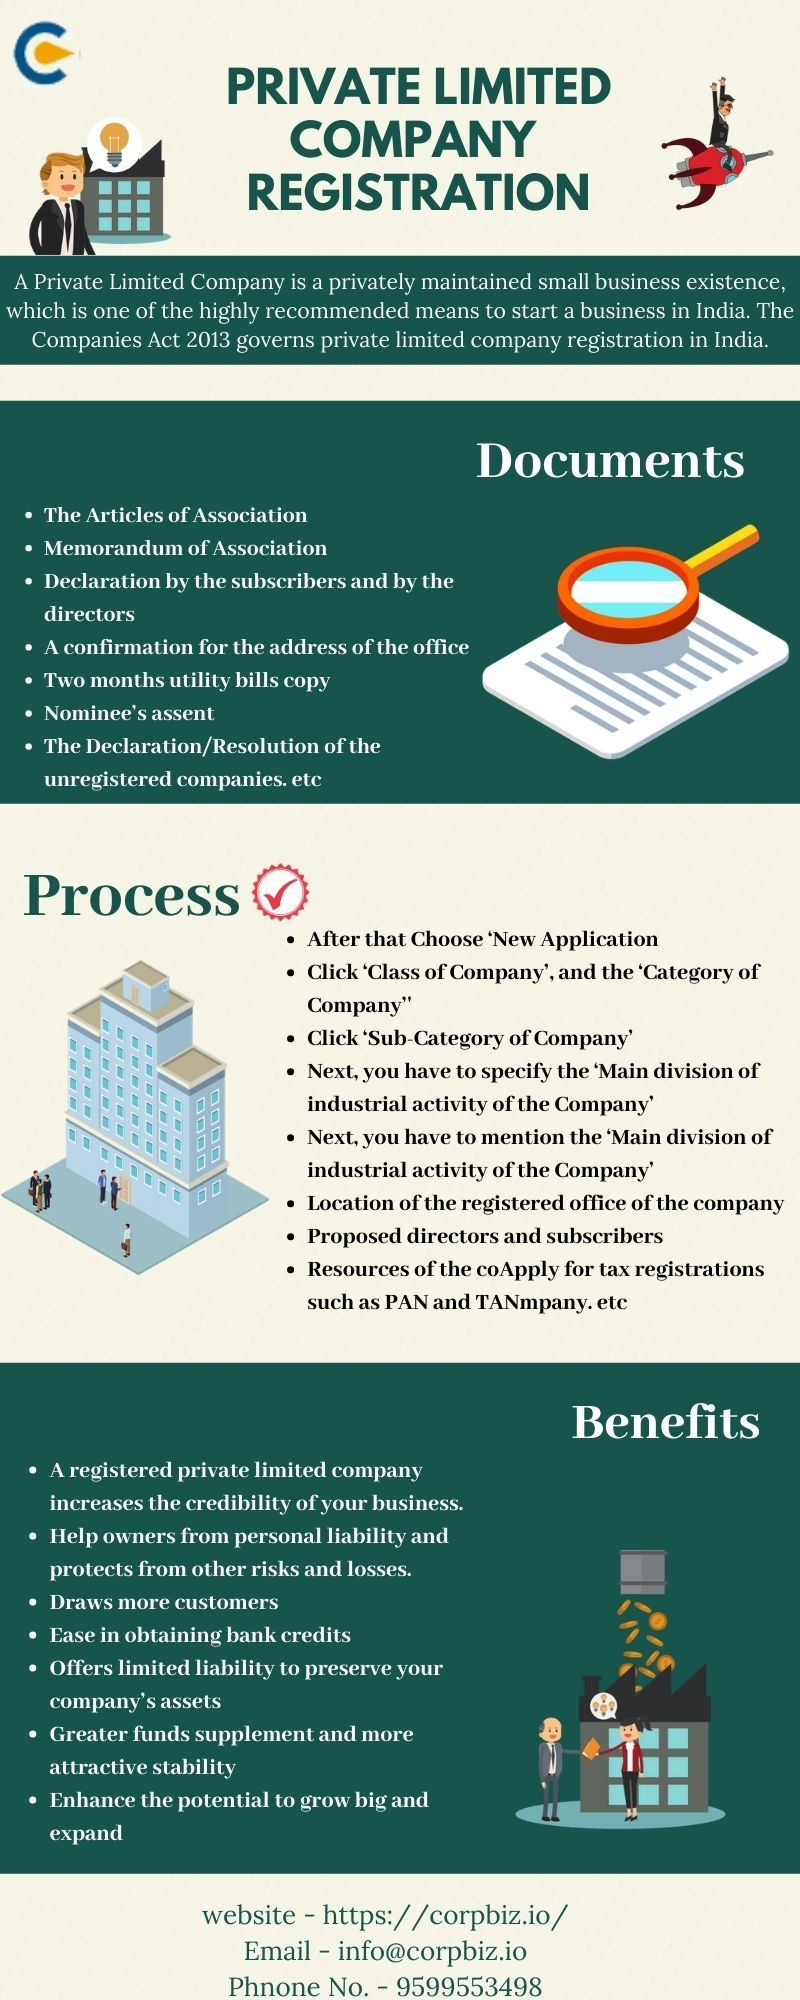 2030d389bc5f72cbad8749ef0f9a1f8b - Applicability Of Ind As To Private Limited Companies